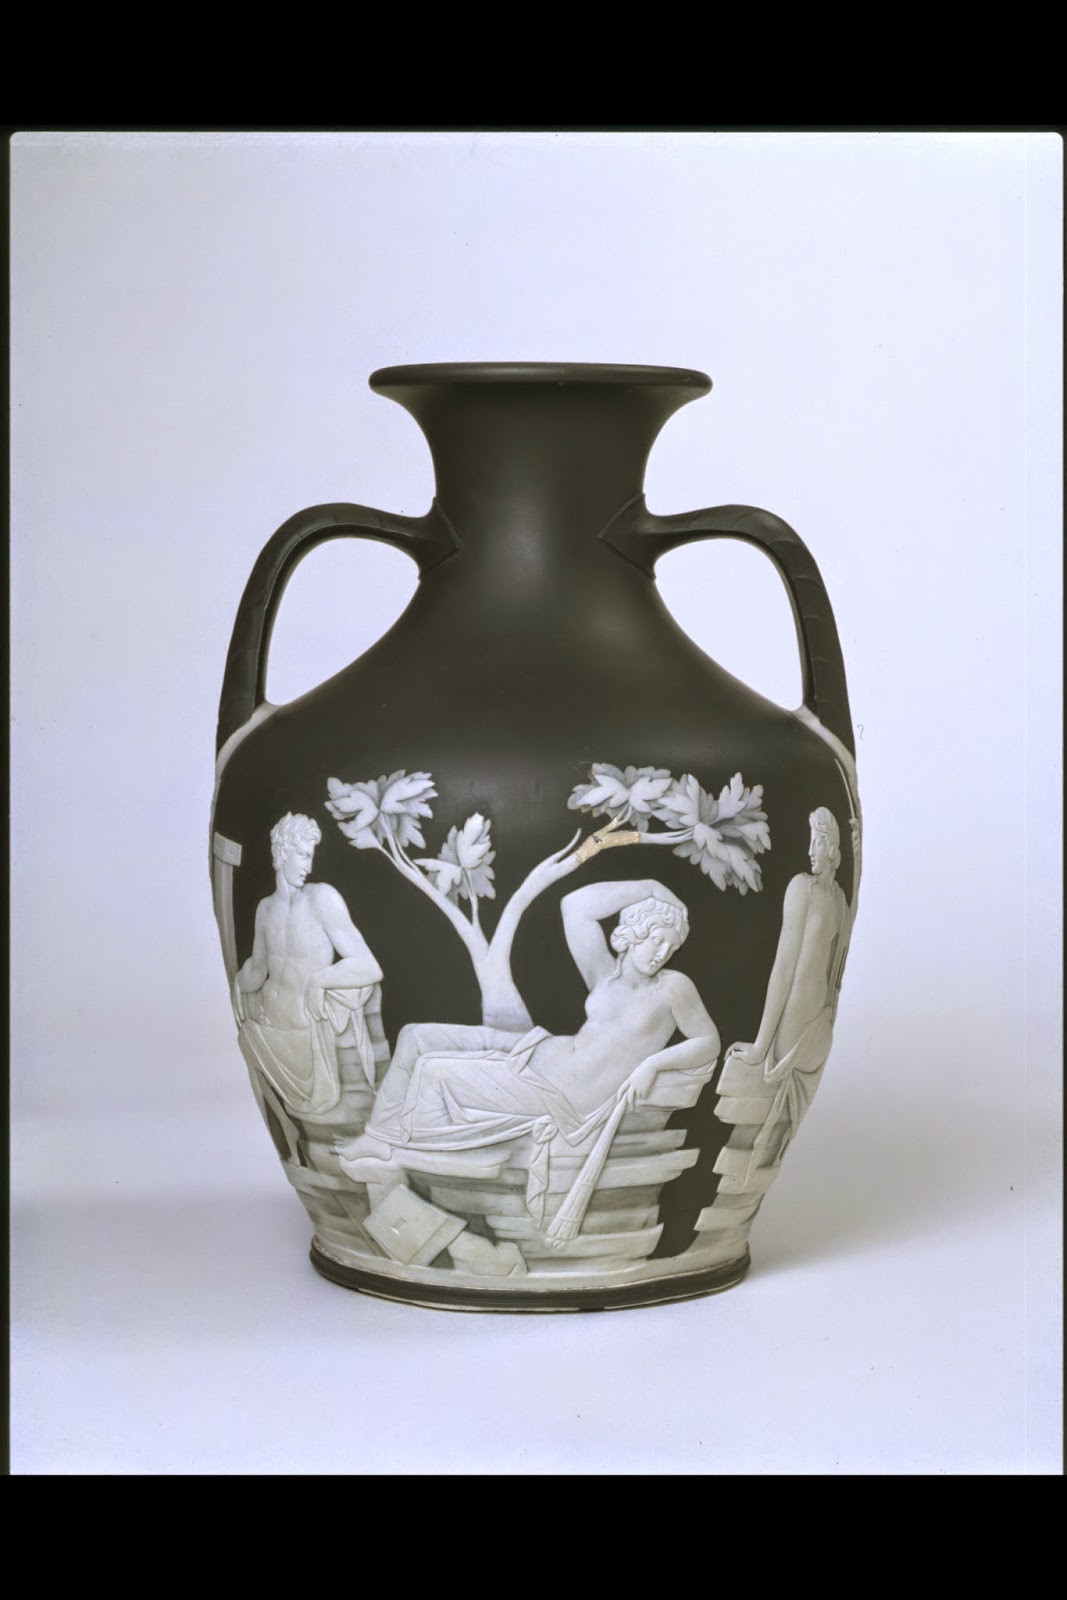 wedgwood portland vase of frozen ink september 2014 inside the portland vase c 1790 ht 25 5 cms